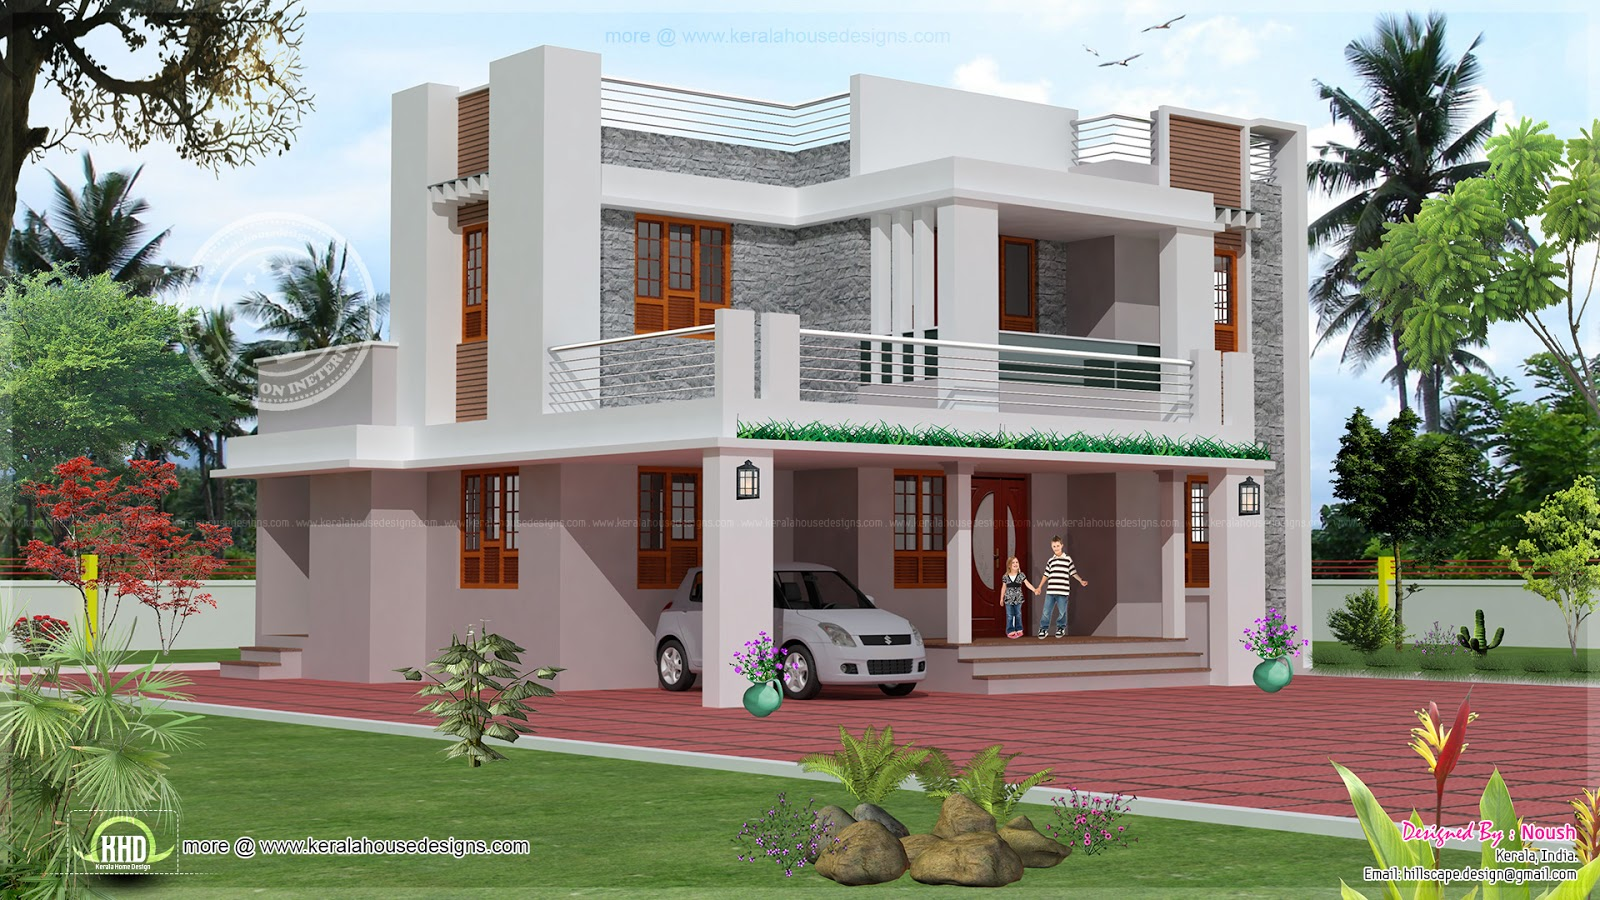 4 bedroom 2 story house exterior design home kerala plans for Indian home outer design